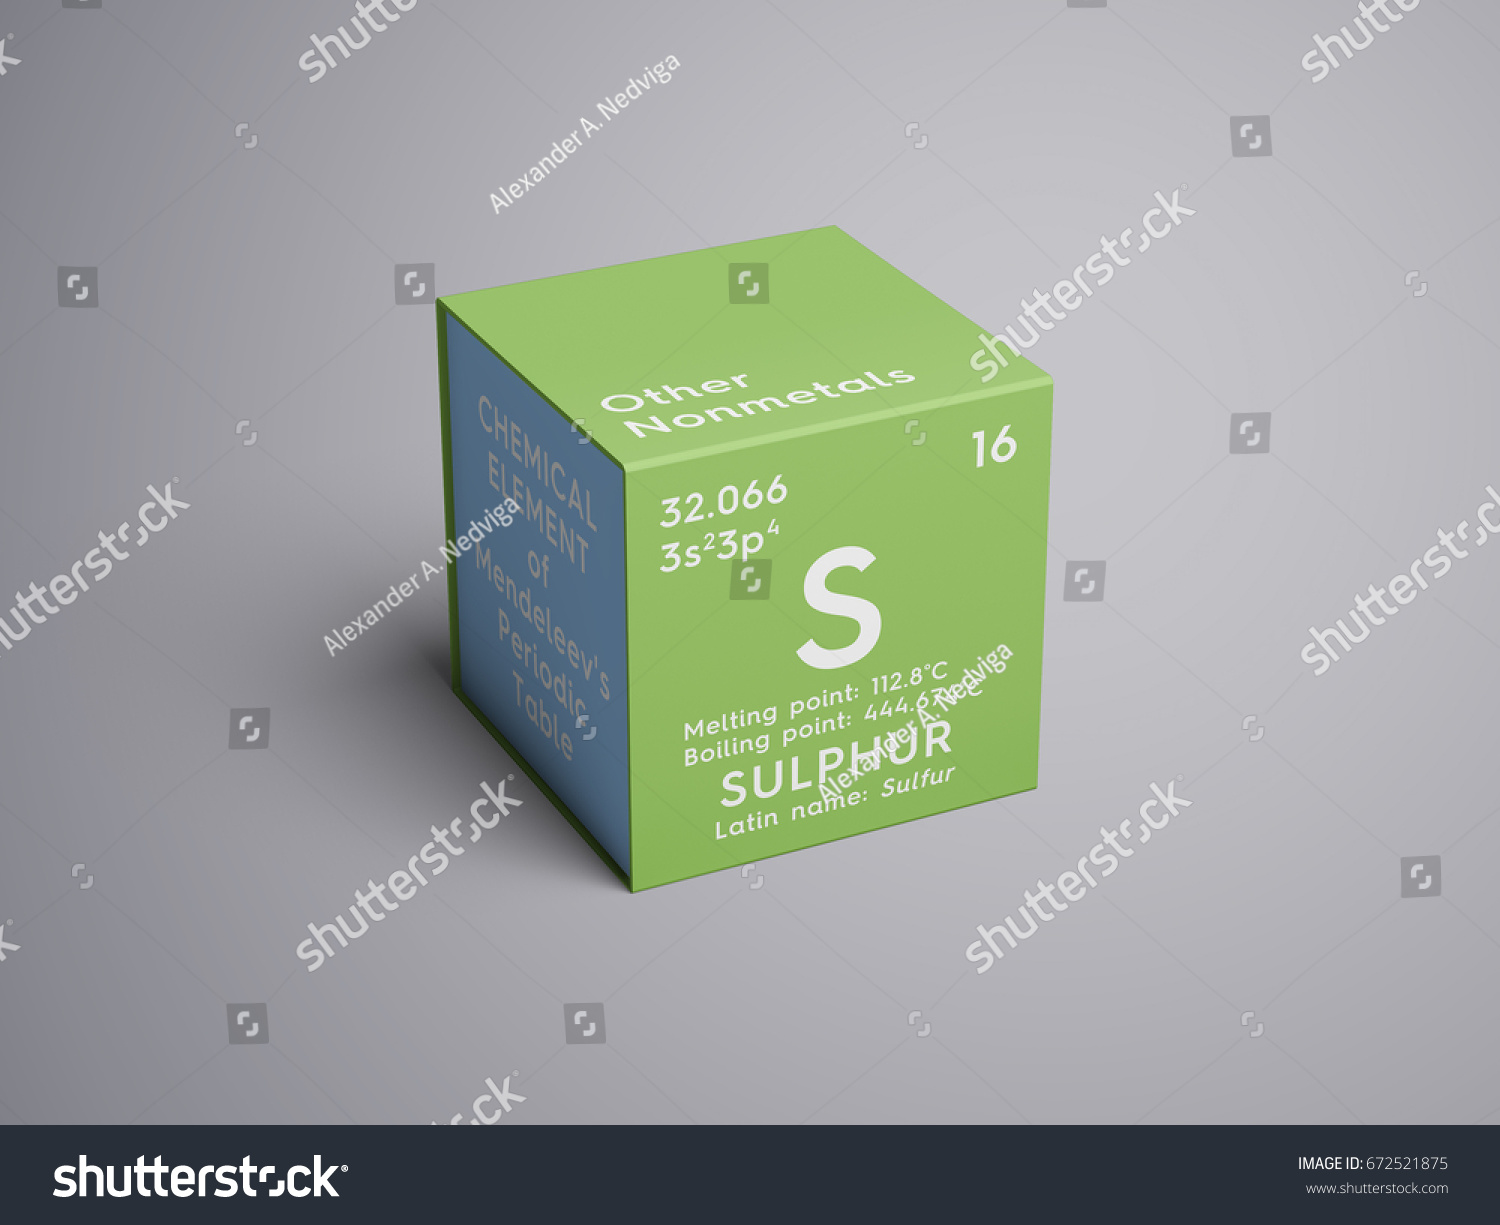 Sulphur sulfur other nonmetals chemical element stock illustration sulphur sulfur other nonmetals chemical element of mendeleevs periodic table sulphur in gamestrikefo Image collections